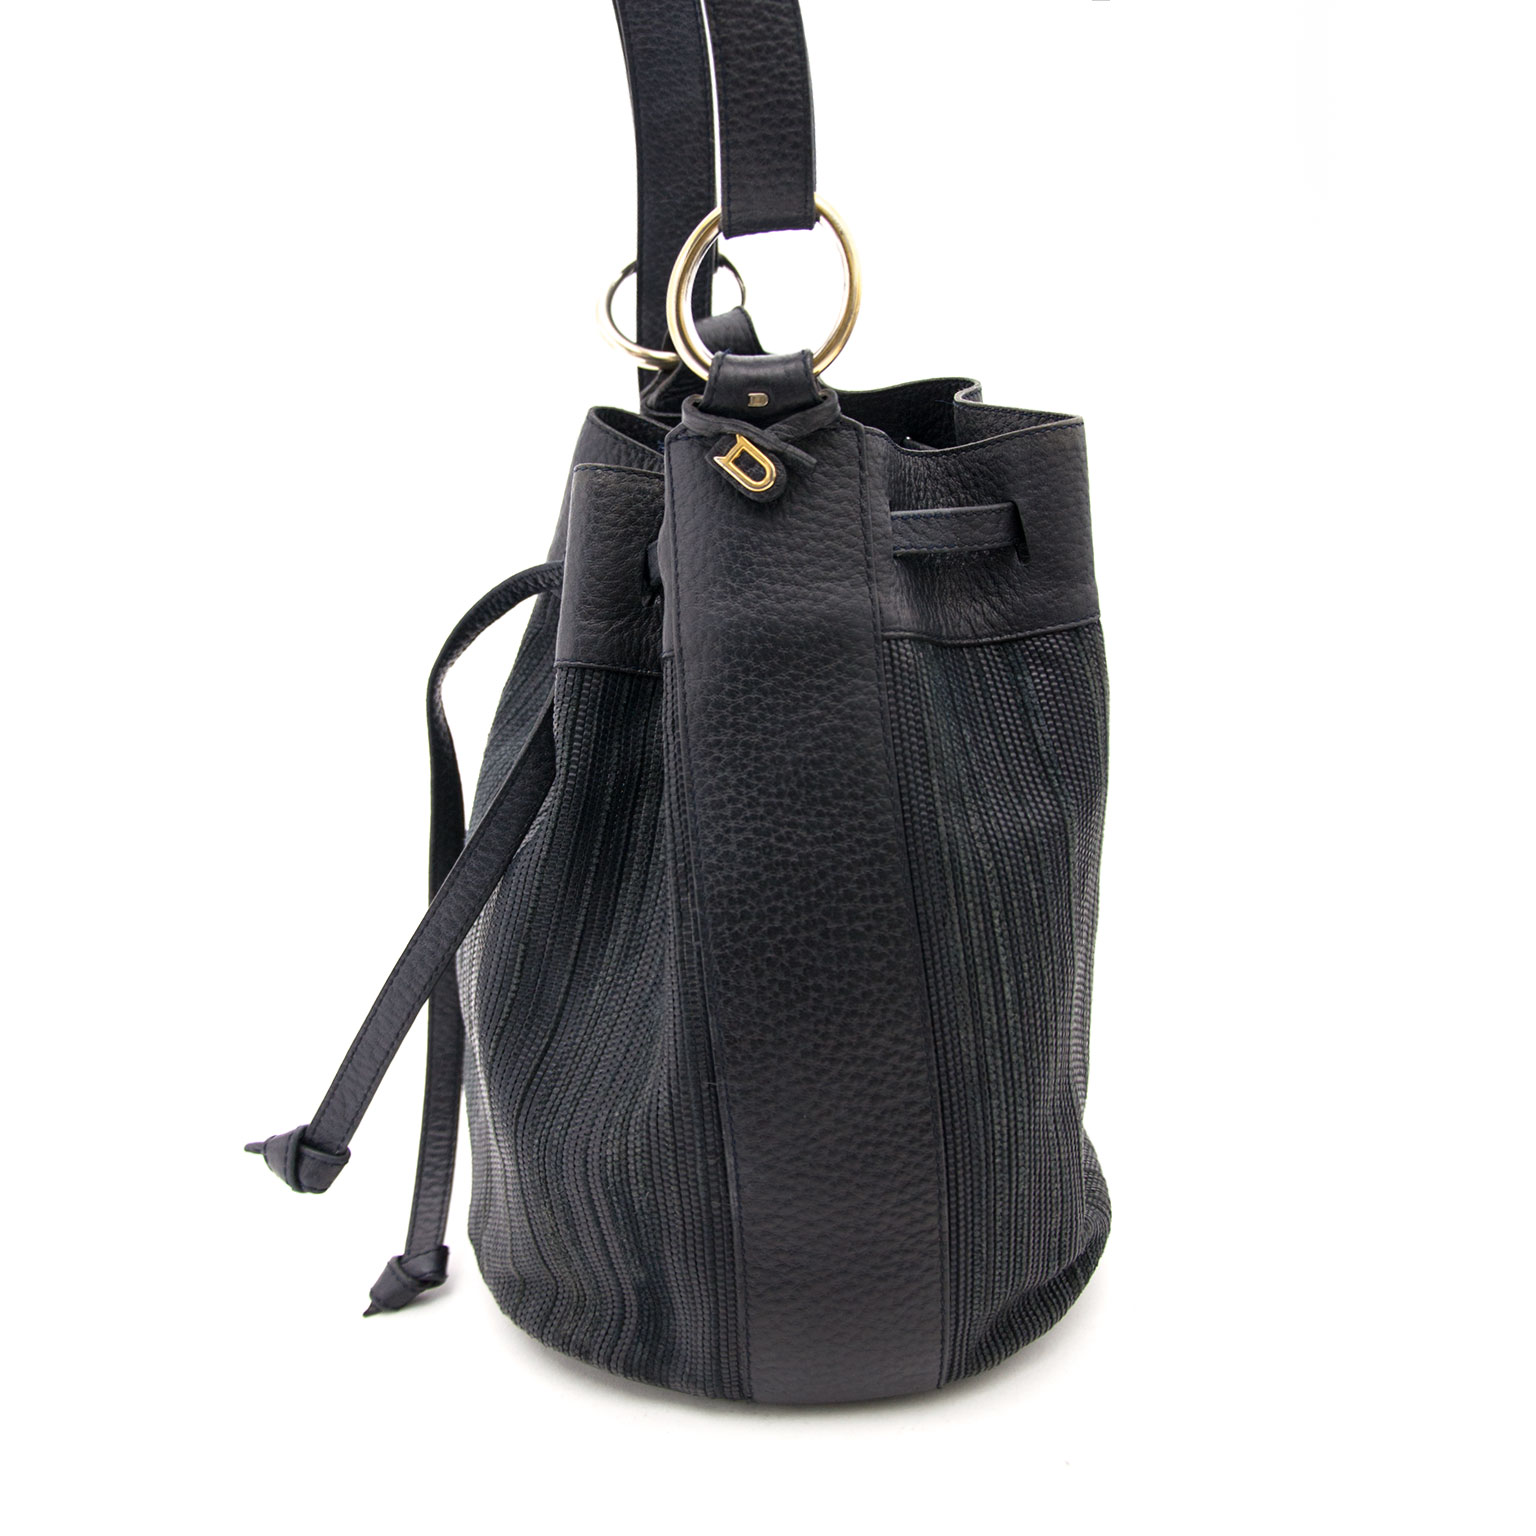 We buy and sell  your secondhand designer handbags for the best price such as Delvaux Toile de Cuir Bucket Bag